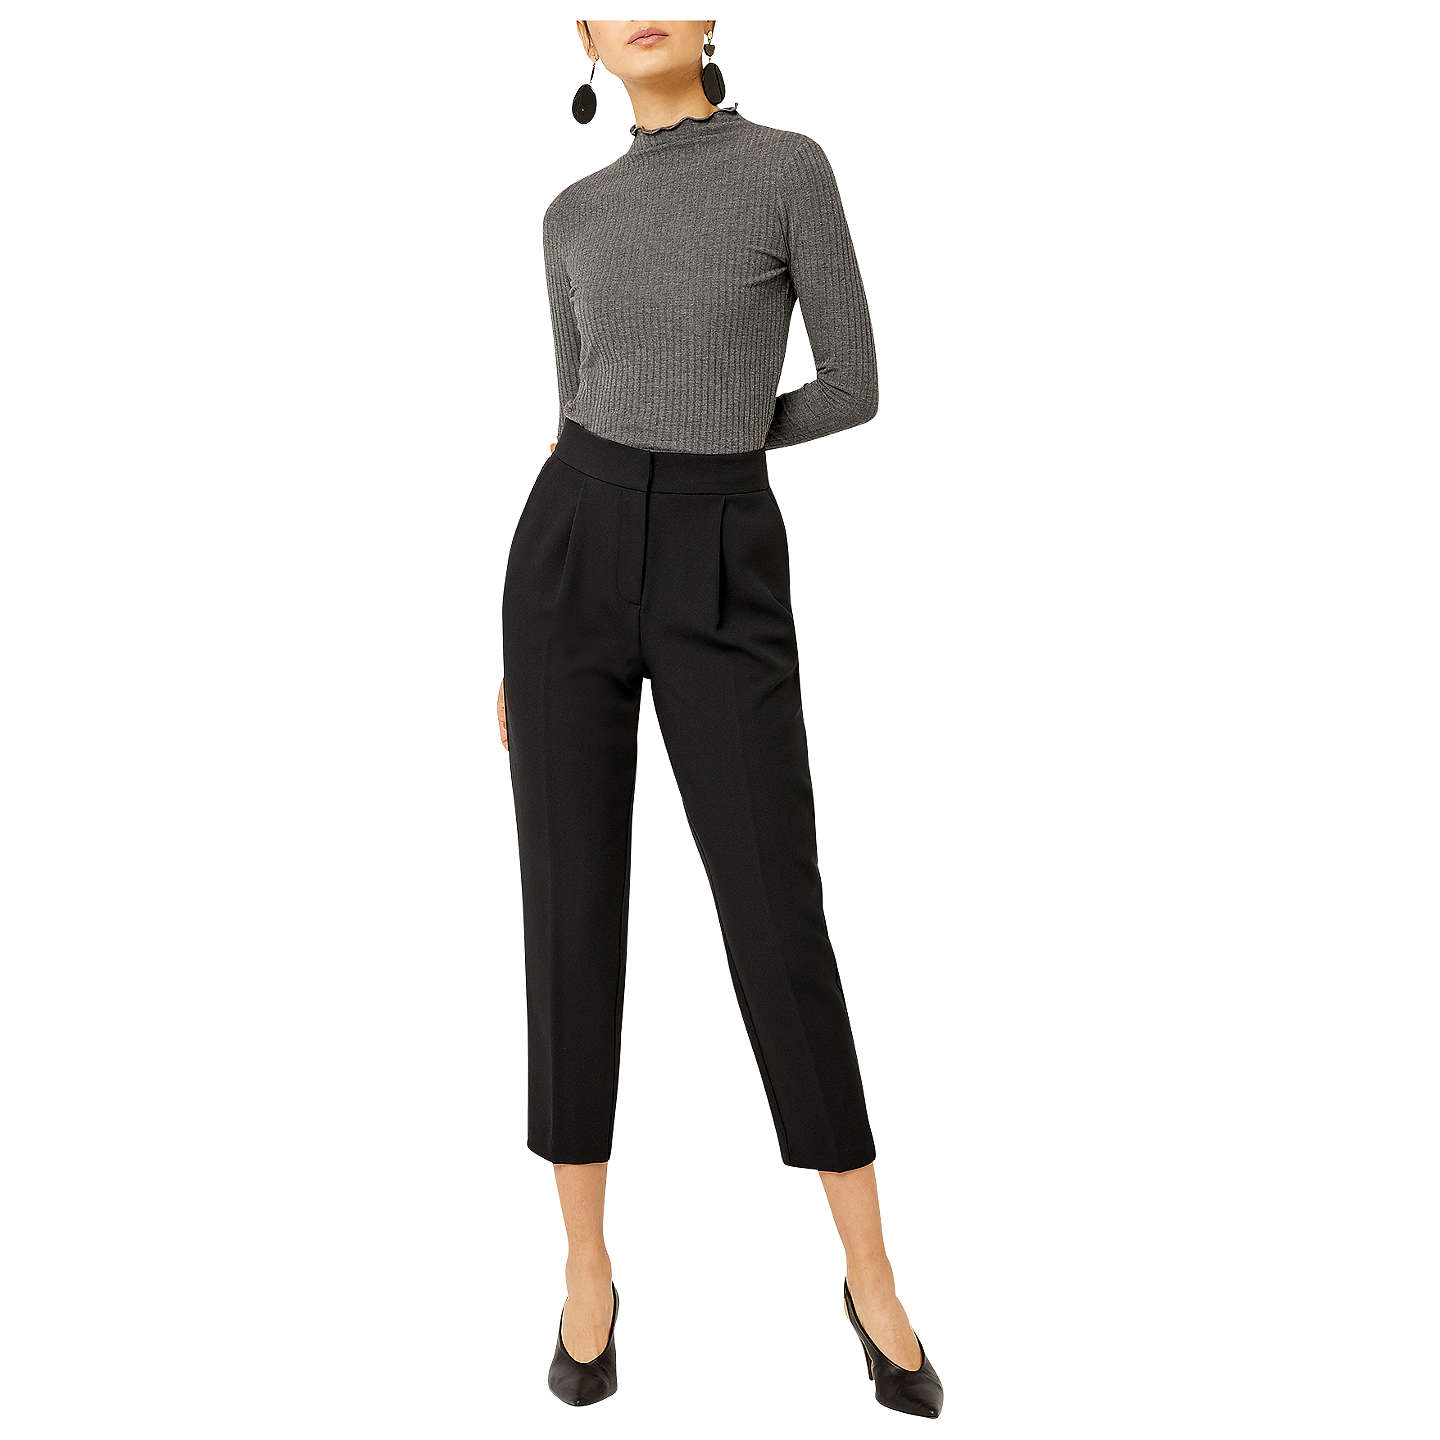 BuyWarehouse Crepe Peg Cropped Trousers, Black, 10 Online at johnlewis.com